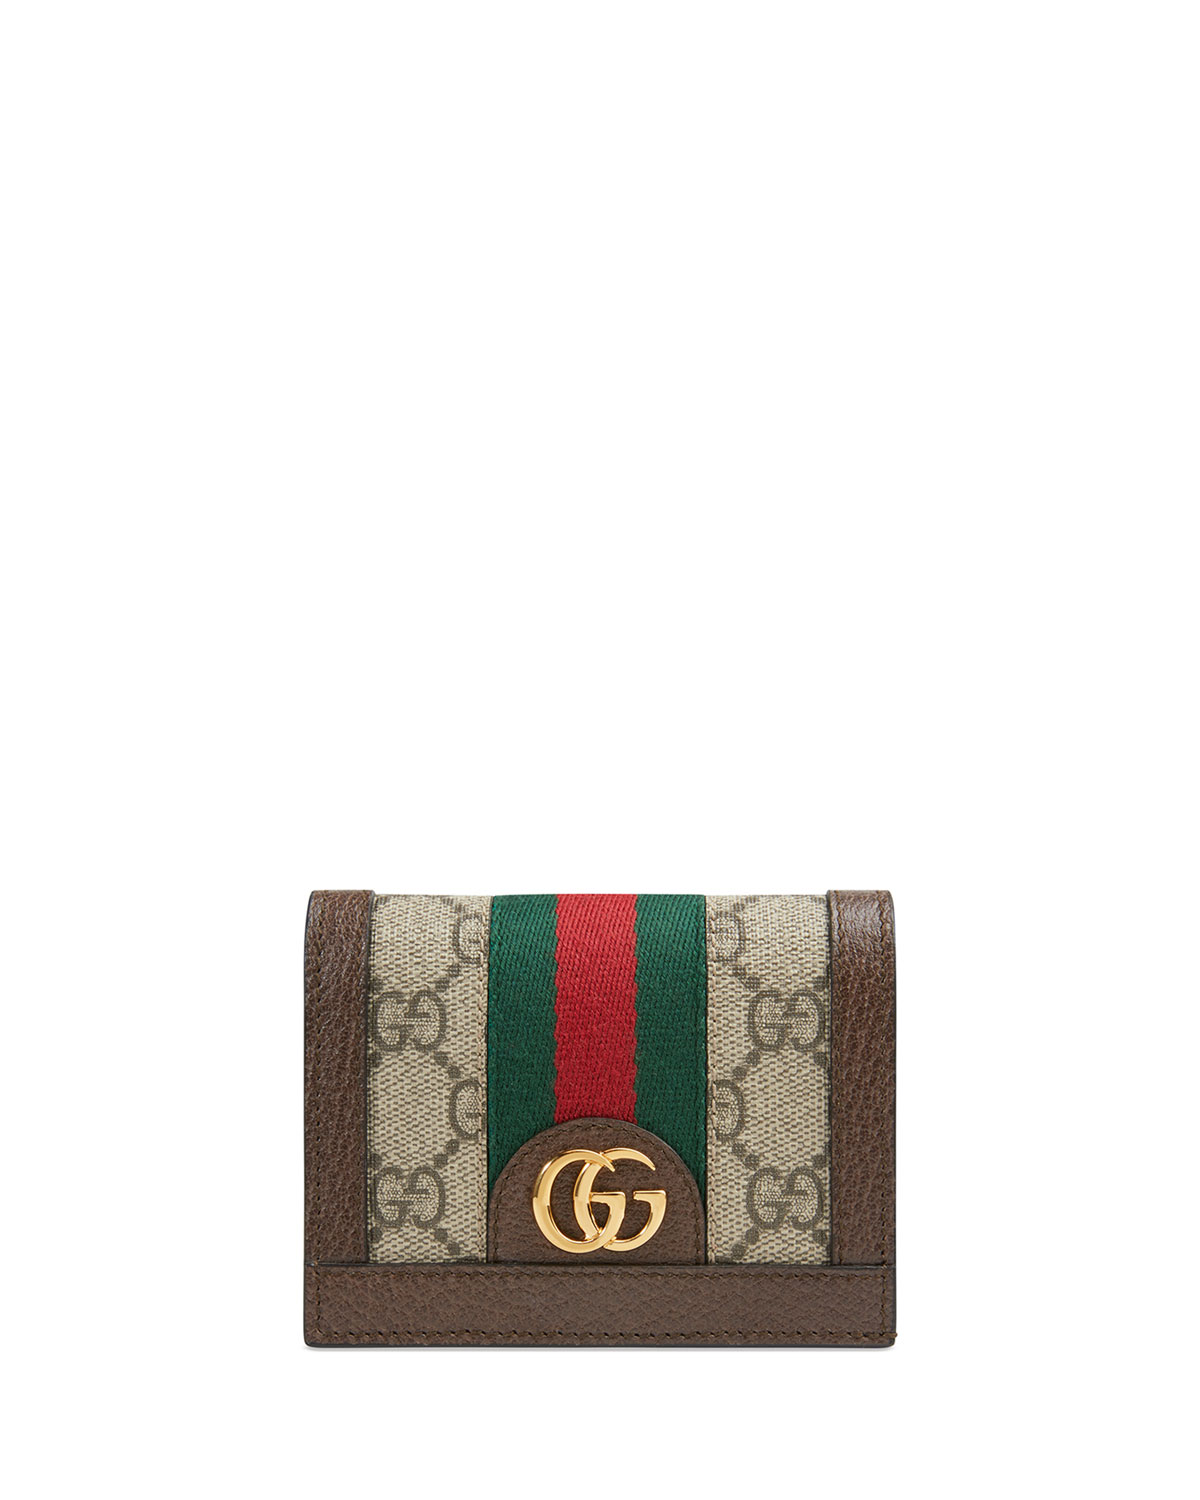 1a4787ef44cd Gucci Ophidia GG Supreme Flap Card Case | Neiman Marcus